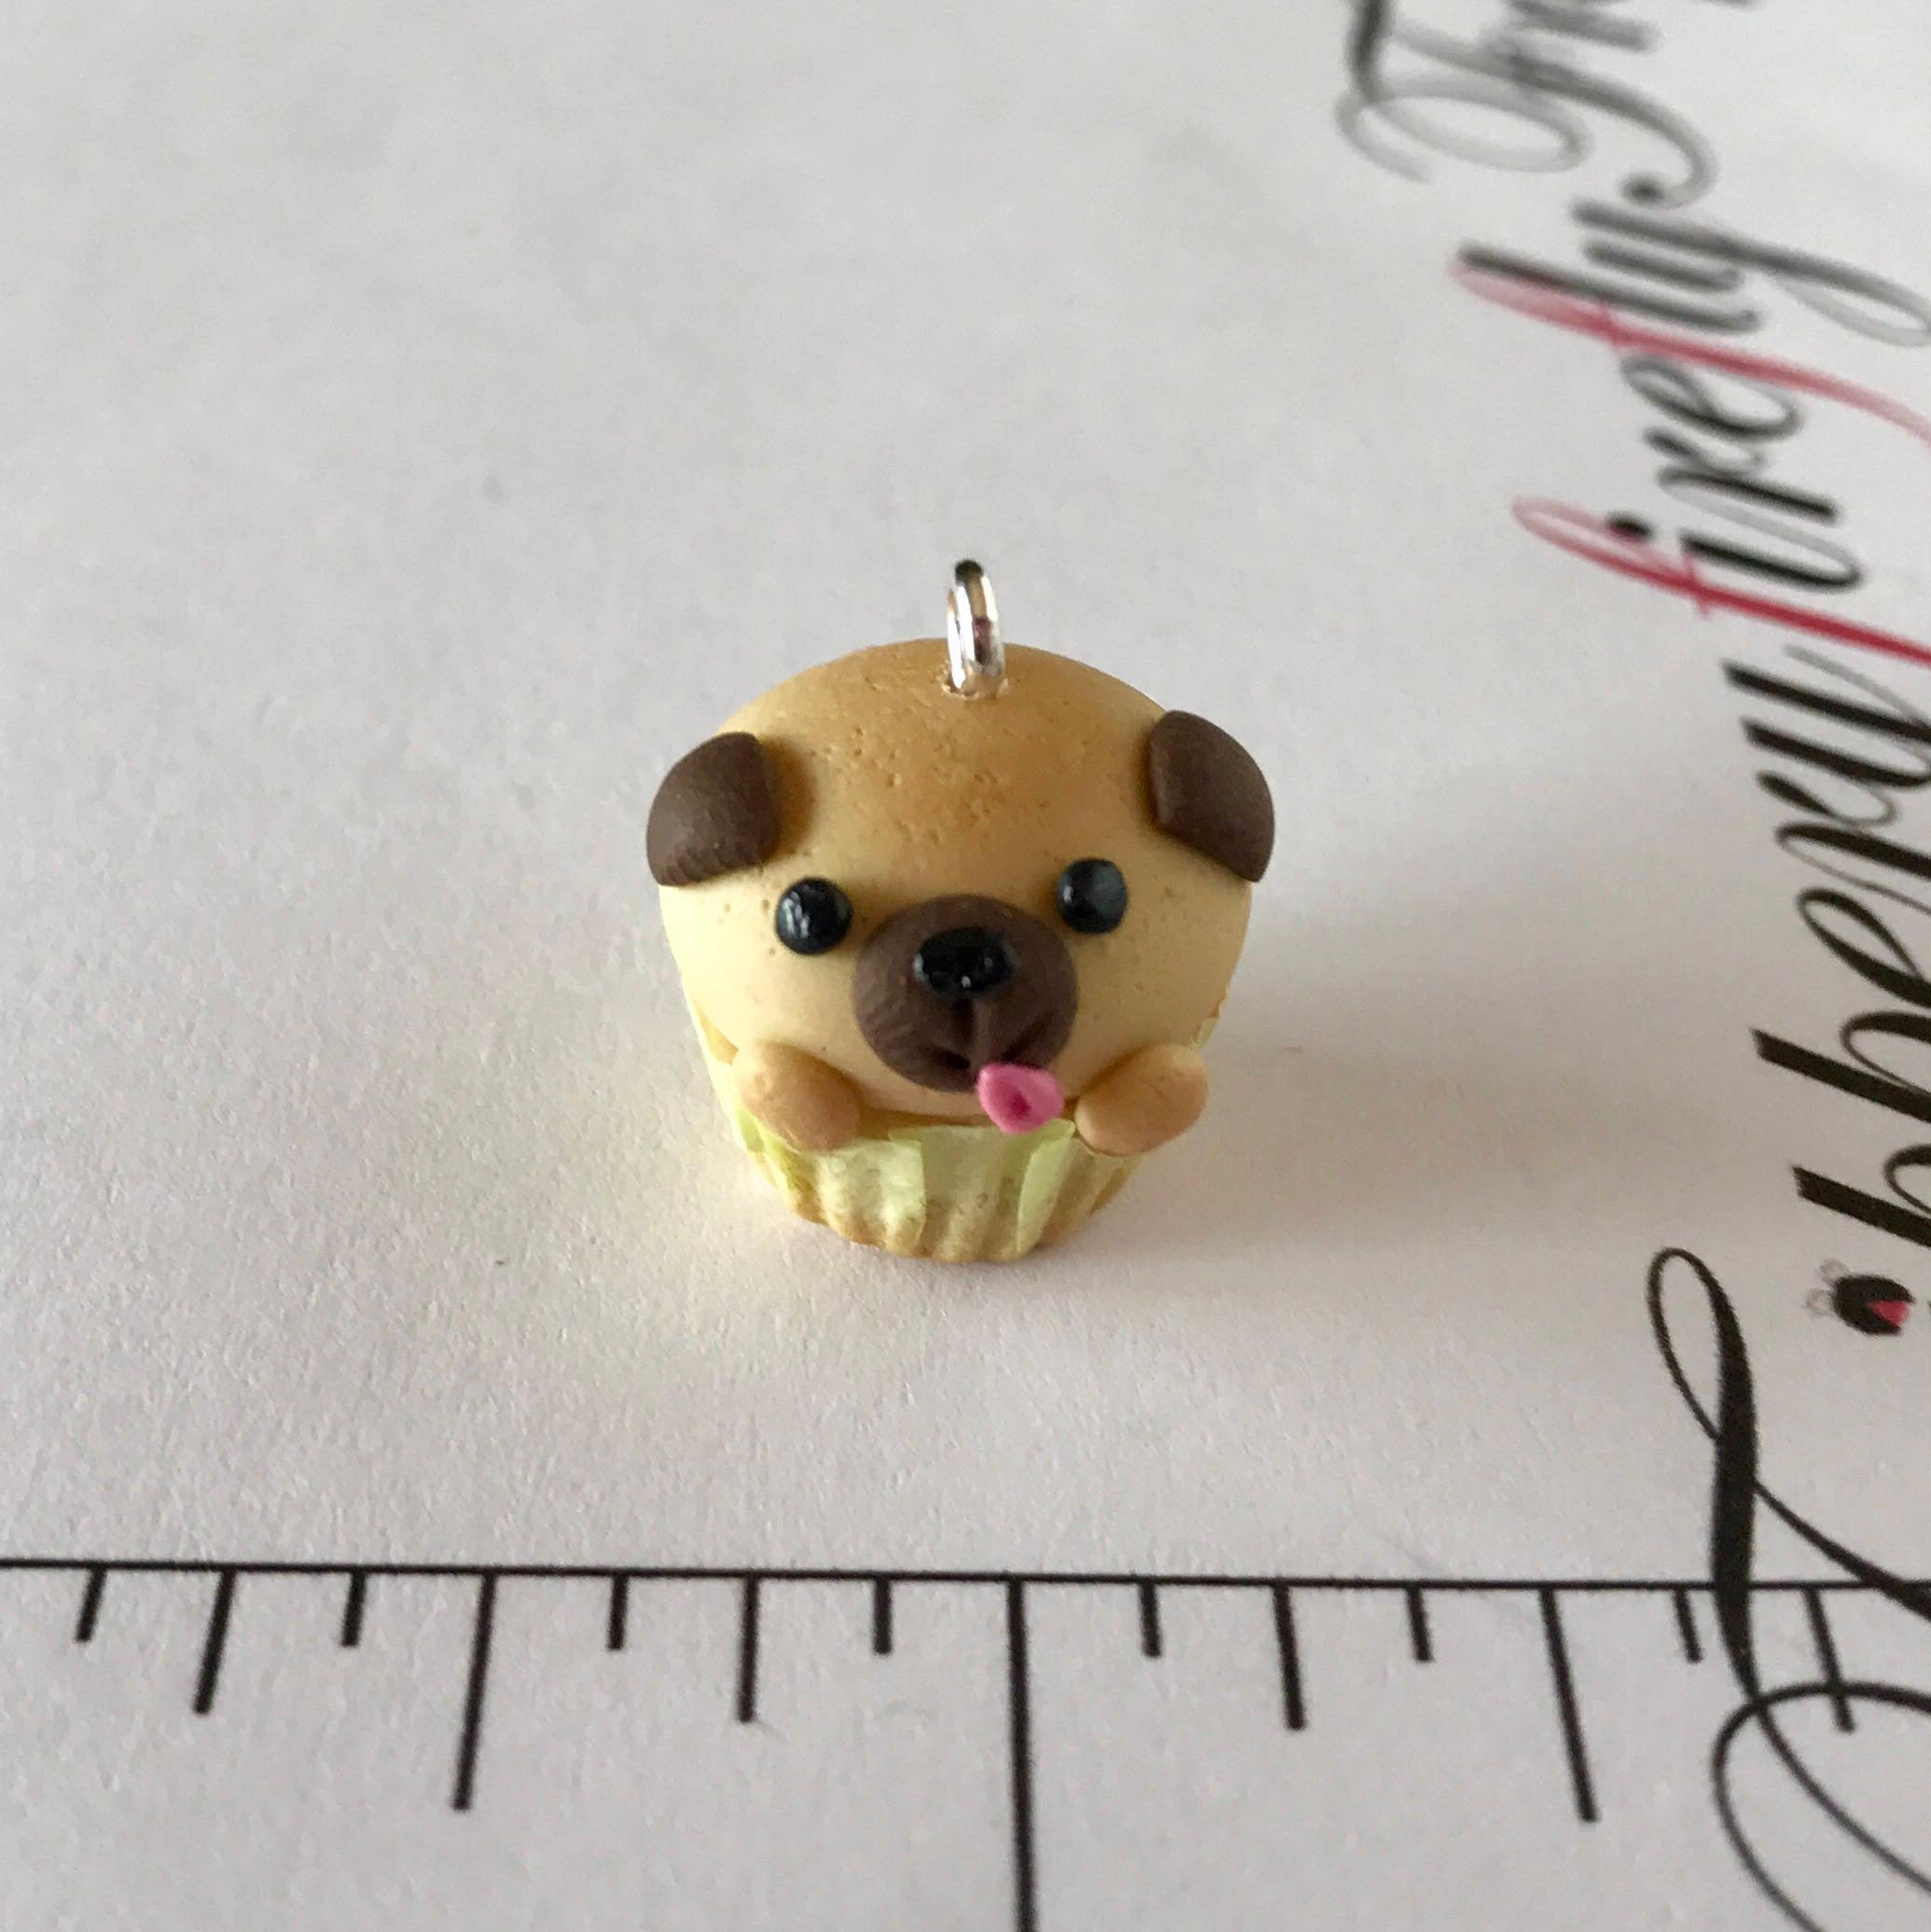 Pug cupcake in front of ruler